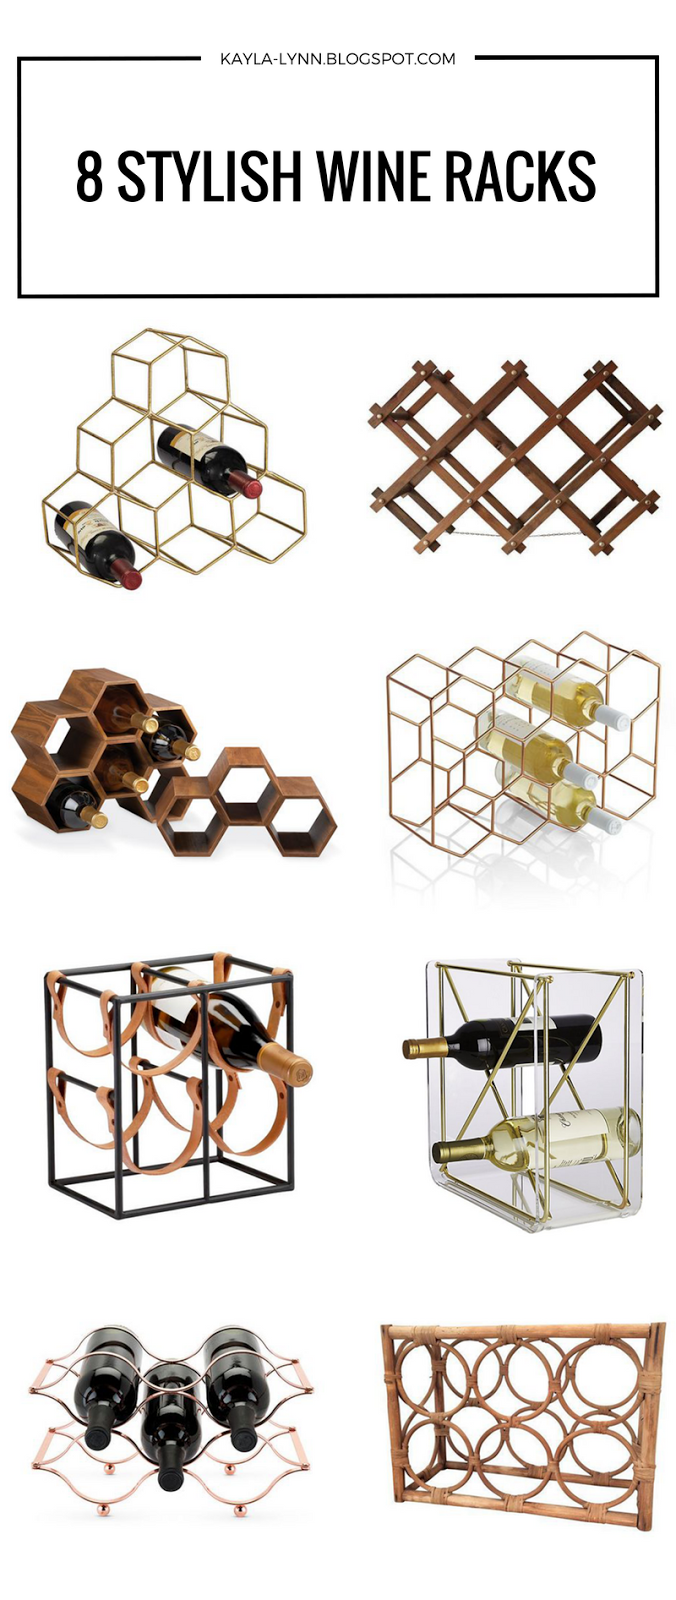 8 Stylish Wine Racks | Kayla Lynn